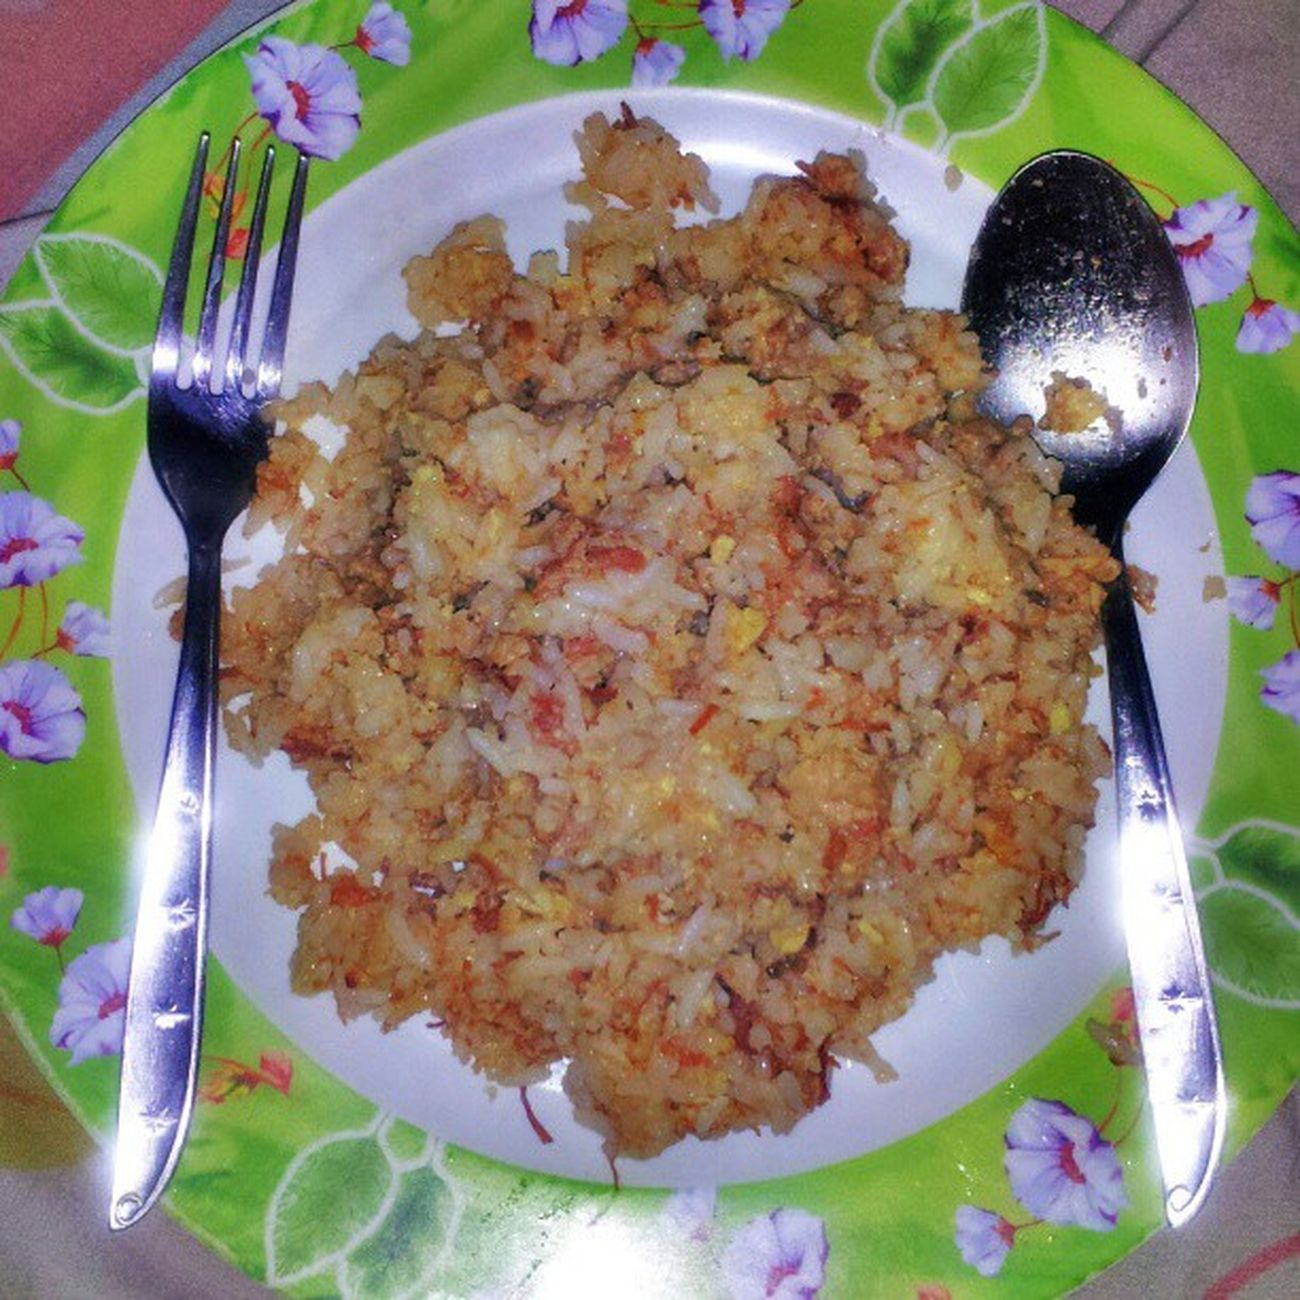 Corned Beef and Egg Fried Rice... Foodcreativity Foodie Foodgasm Foooood foodography fooddiary foodstagram nomnoms mydish allinone nomoreulam goodeats yumyum ilovefood ilovetoeat ilovetocook